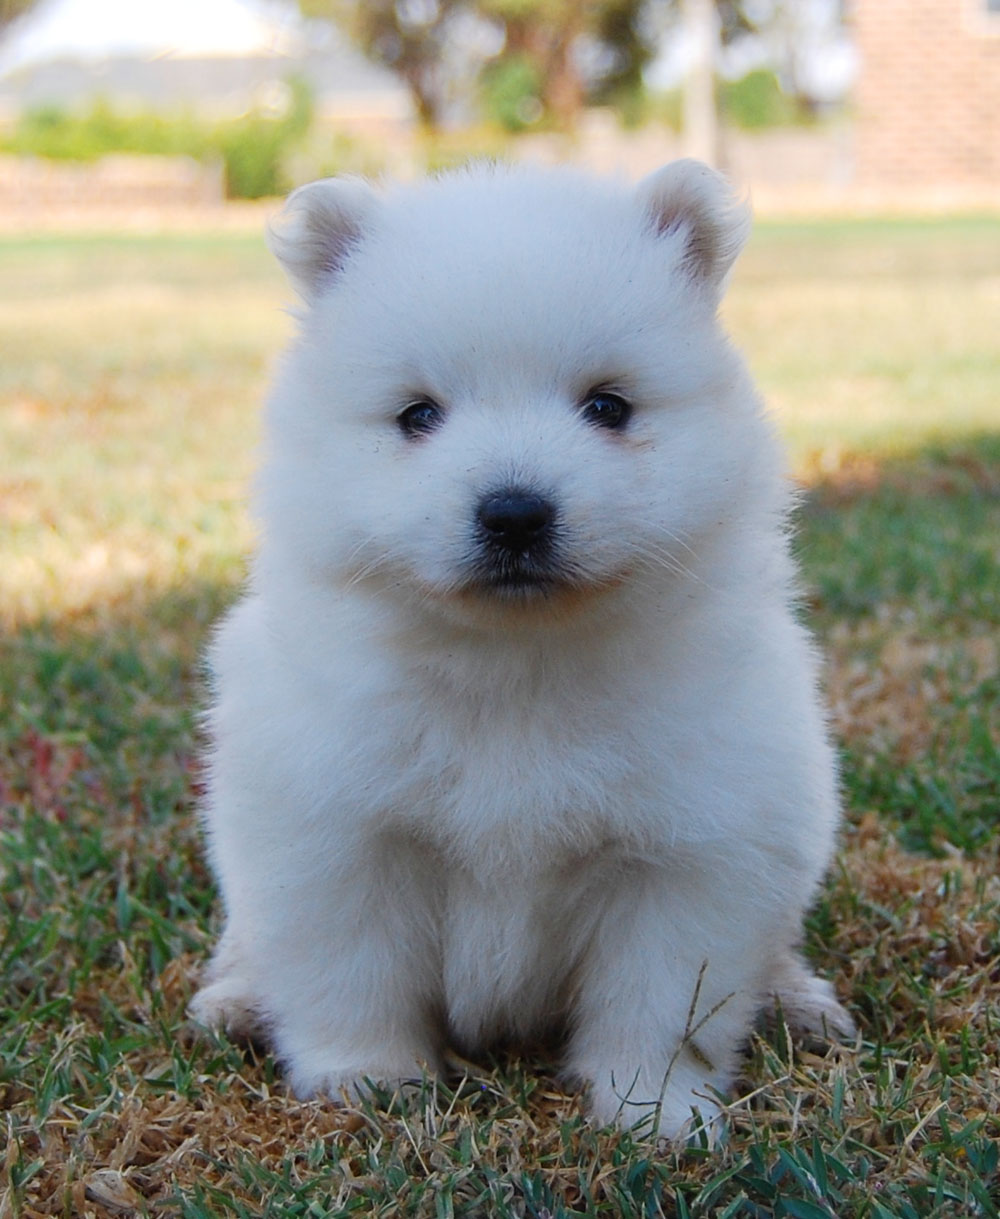 ... Spitz puppy photo and wallpaper. Beautiful Lovely Japanese Spitz puppy